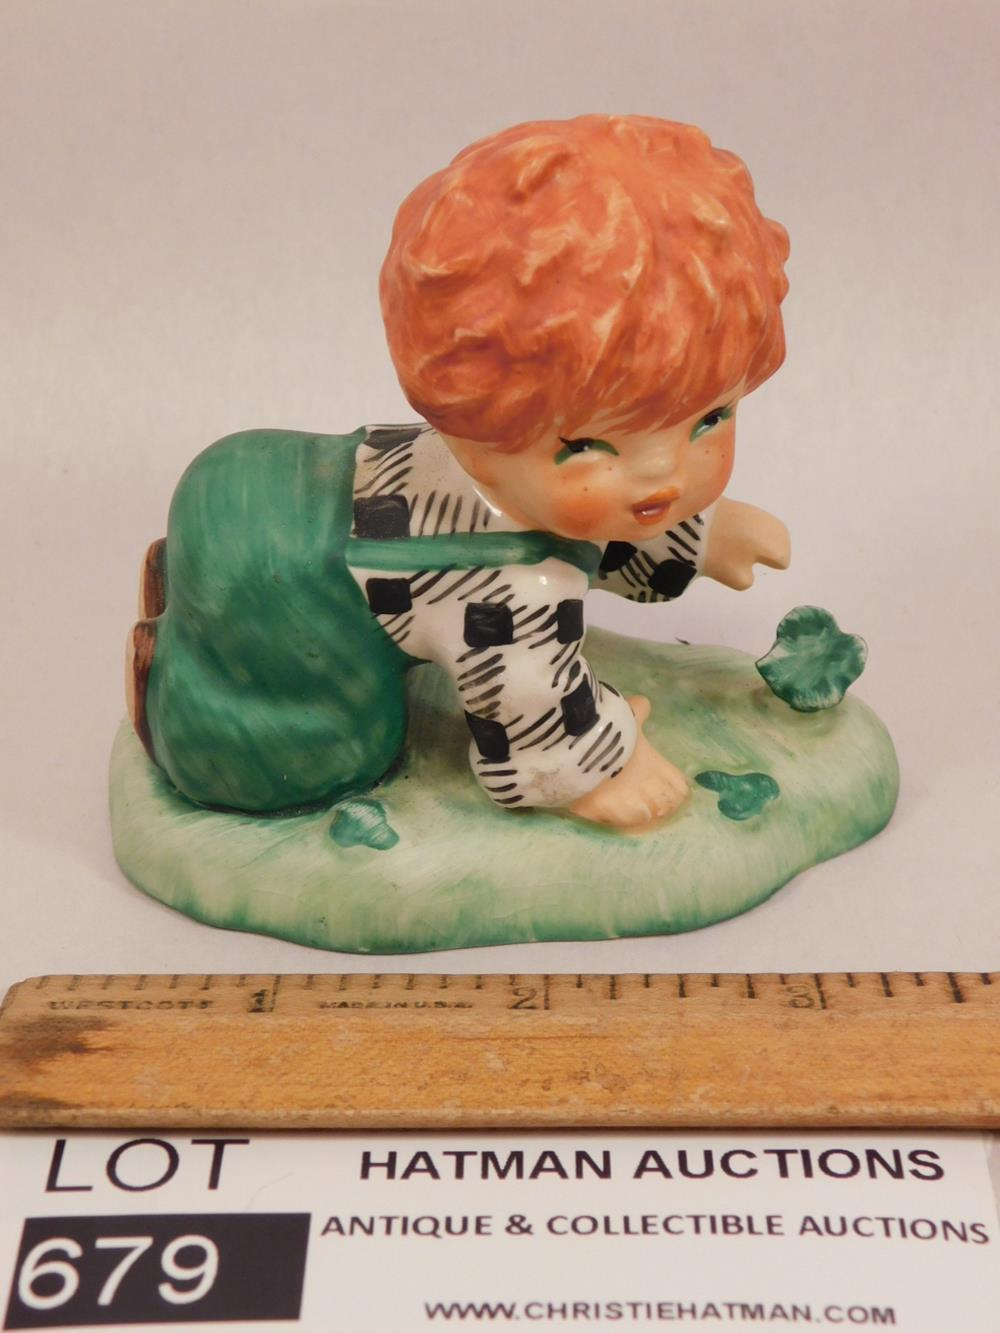 HUMMEL GOEBEL FIGURINE ANTIQUES AND COLLECTIBLES